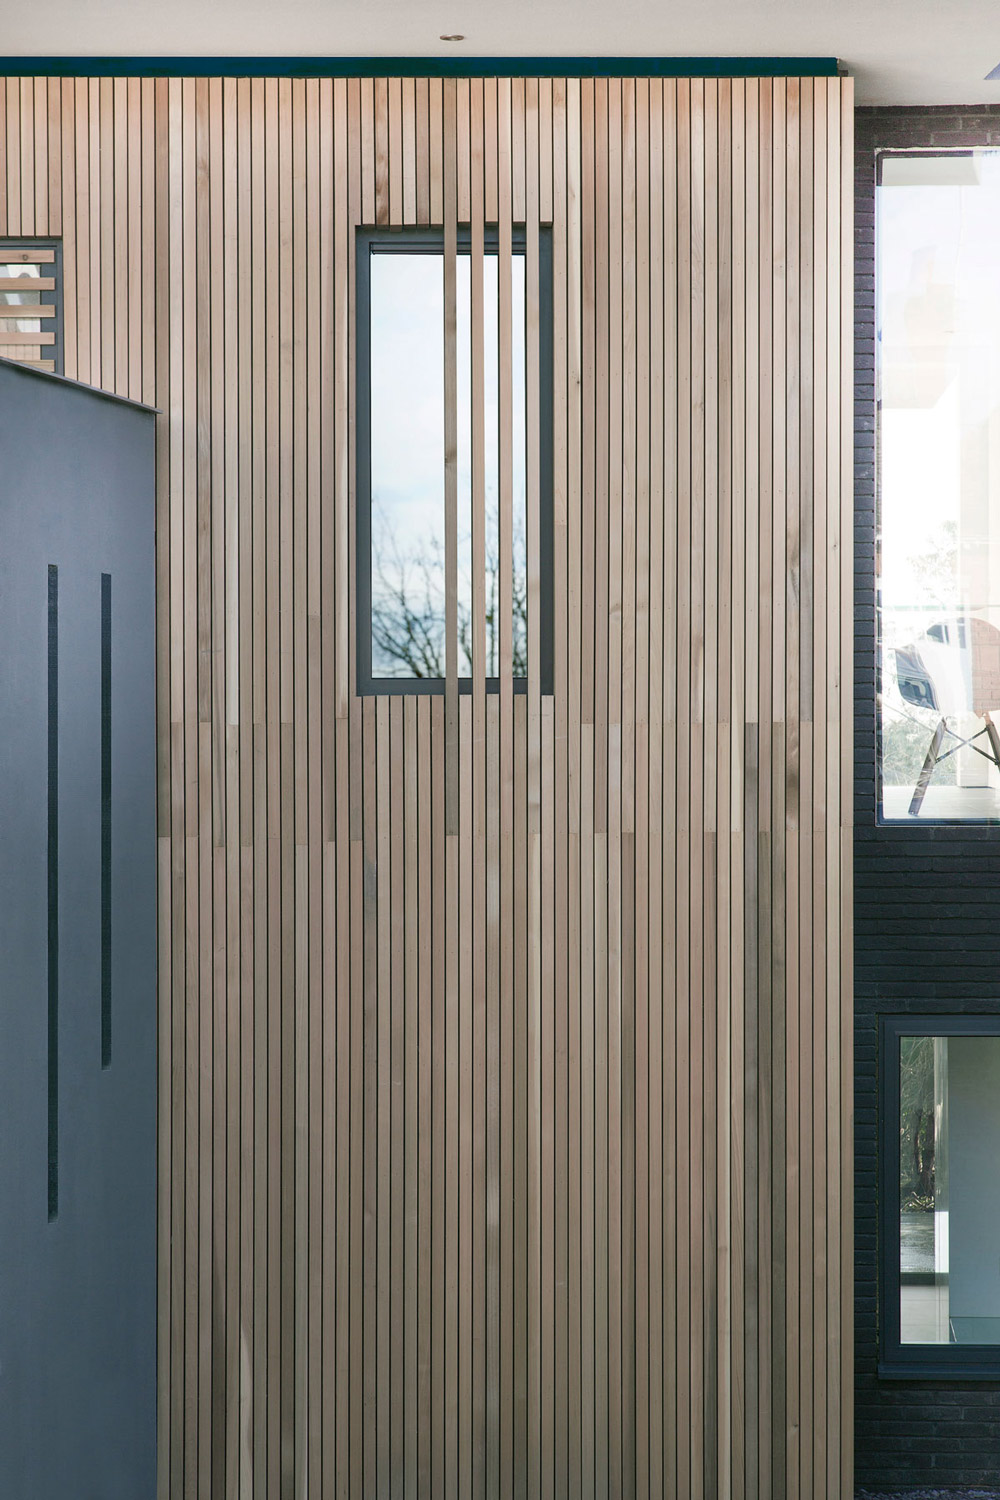 Wood Cladding, Architectural Detail, Modern Home in Hampshire, England